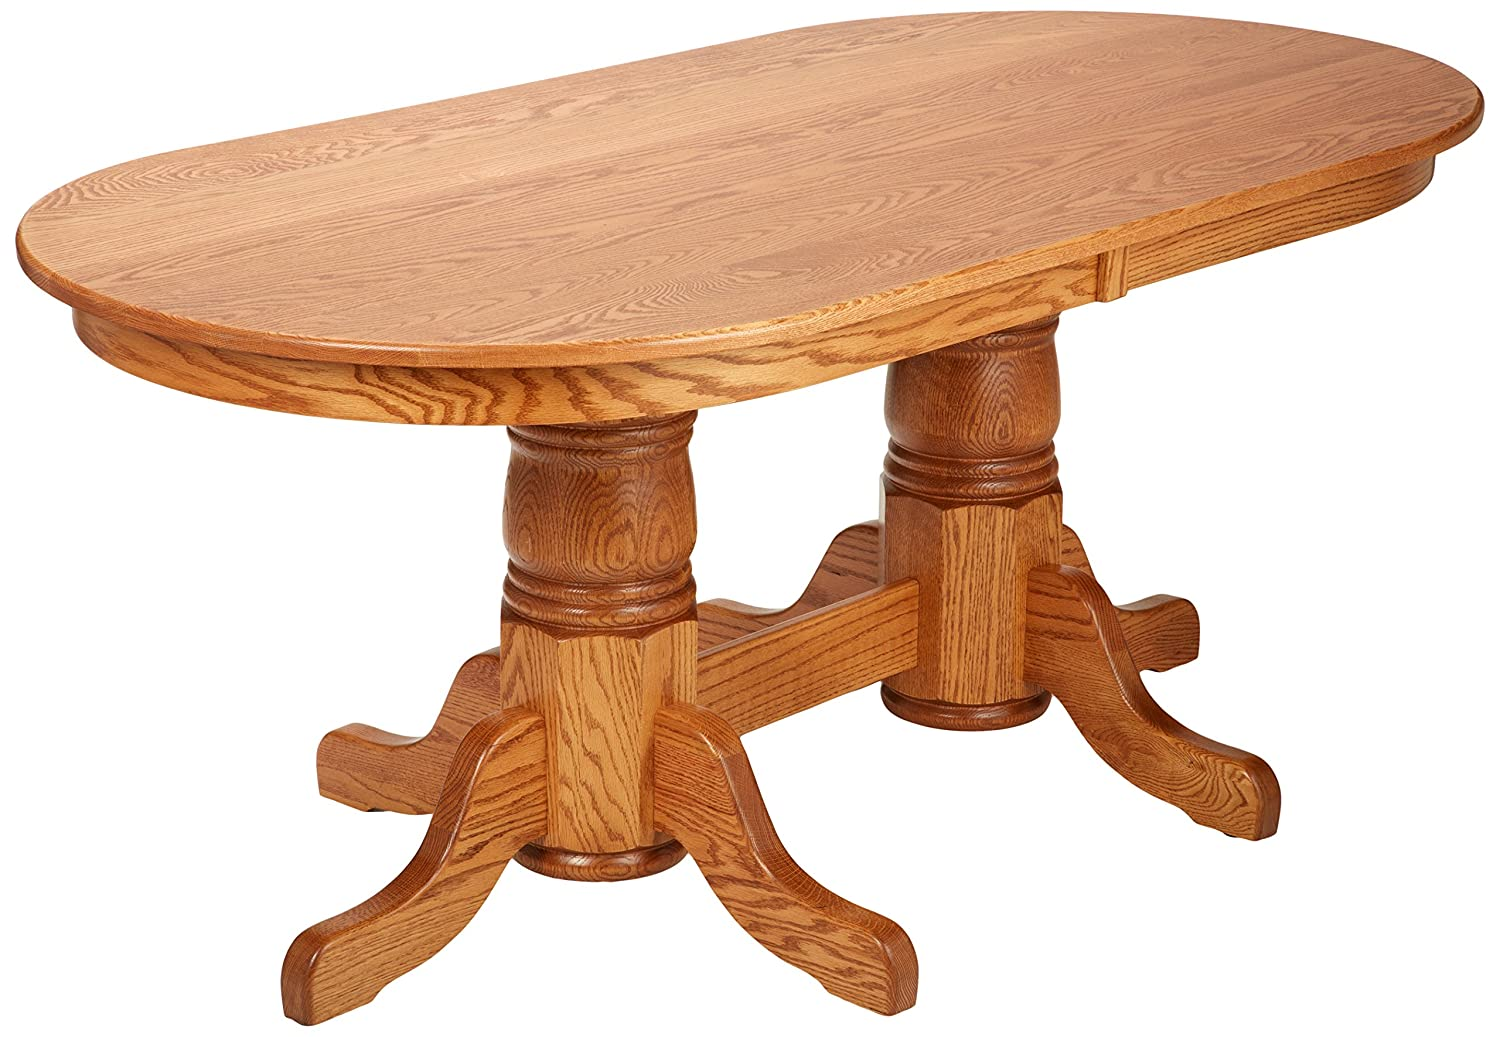 type lp by room product louis dining tables table pedestal collection philippe oval